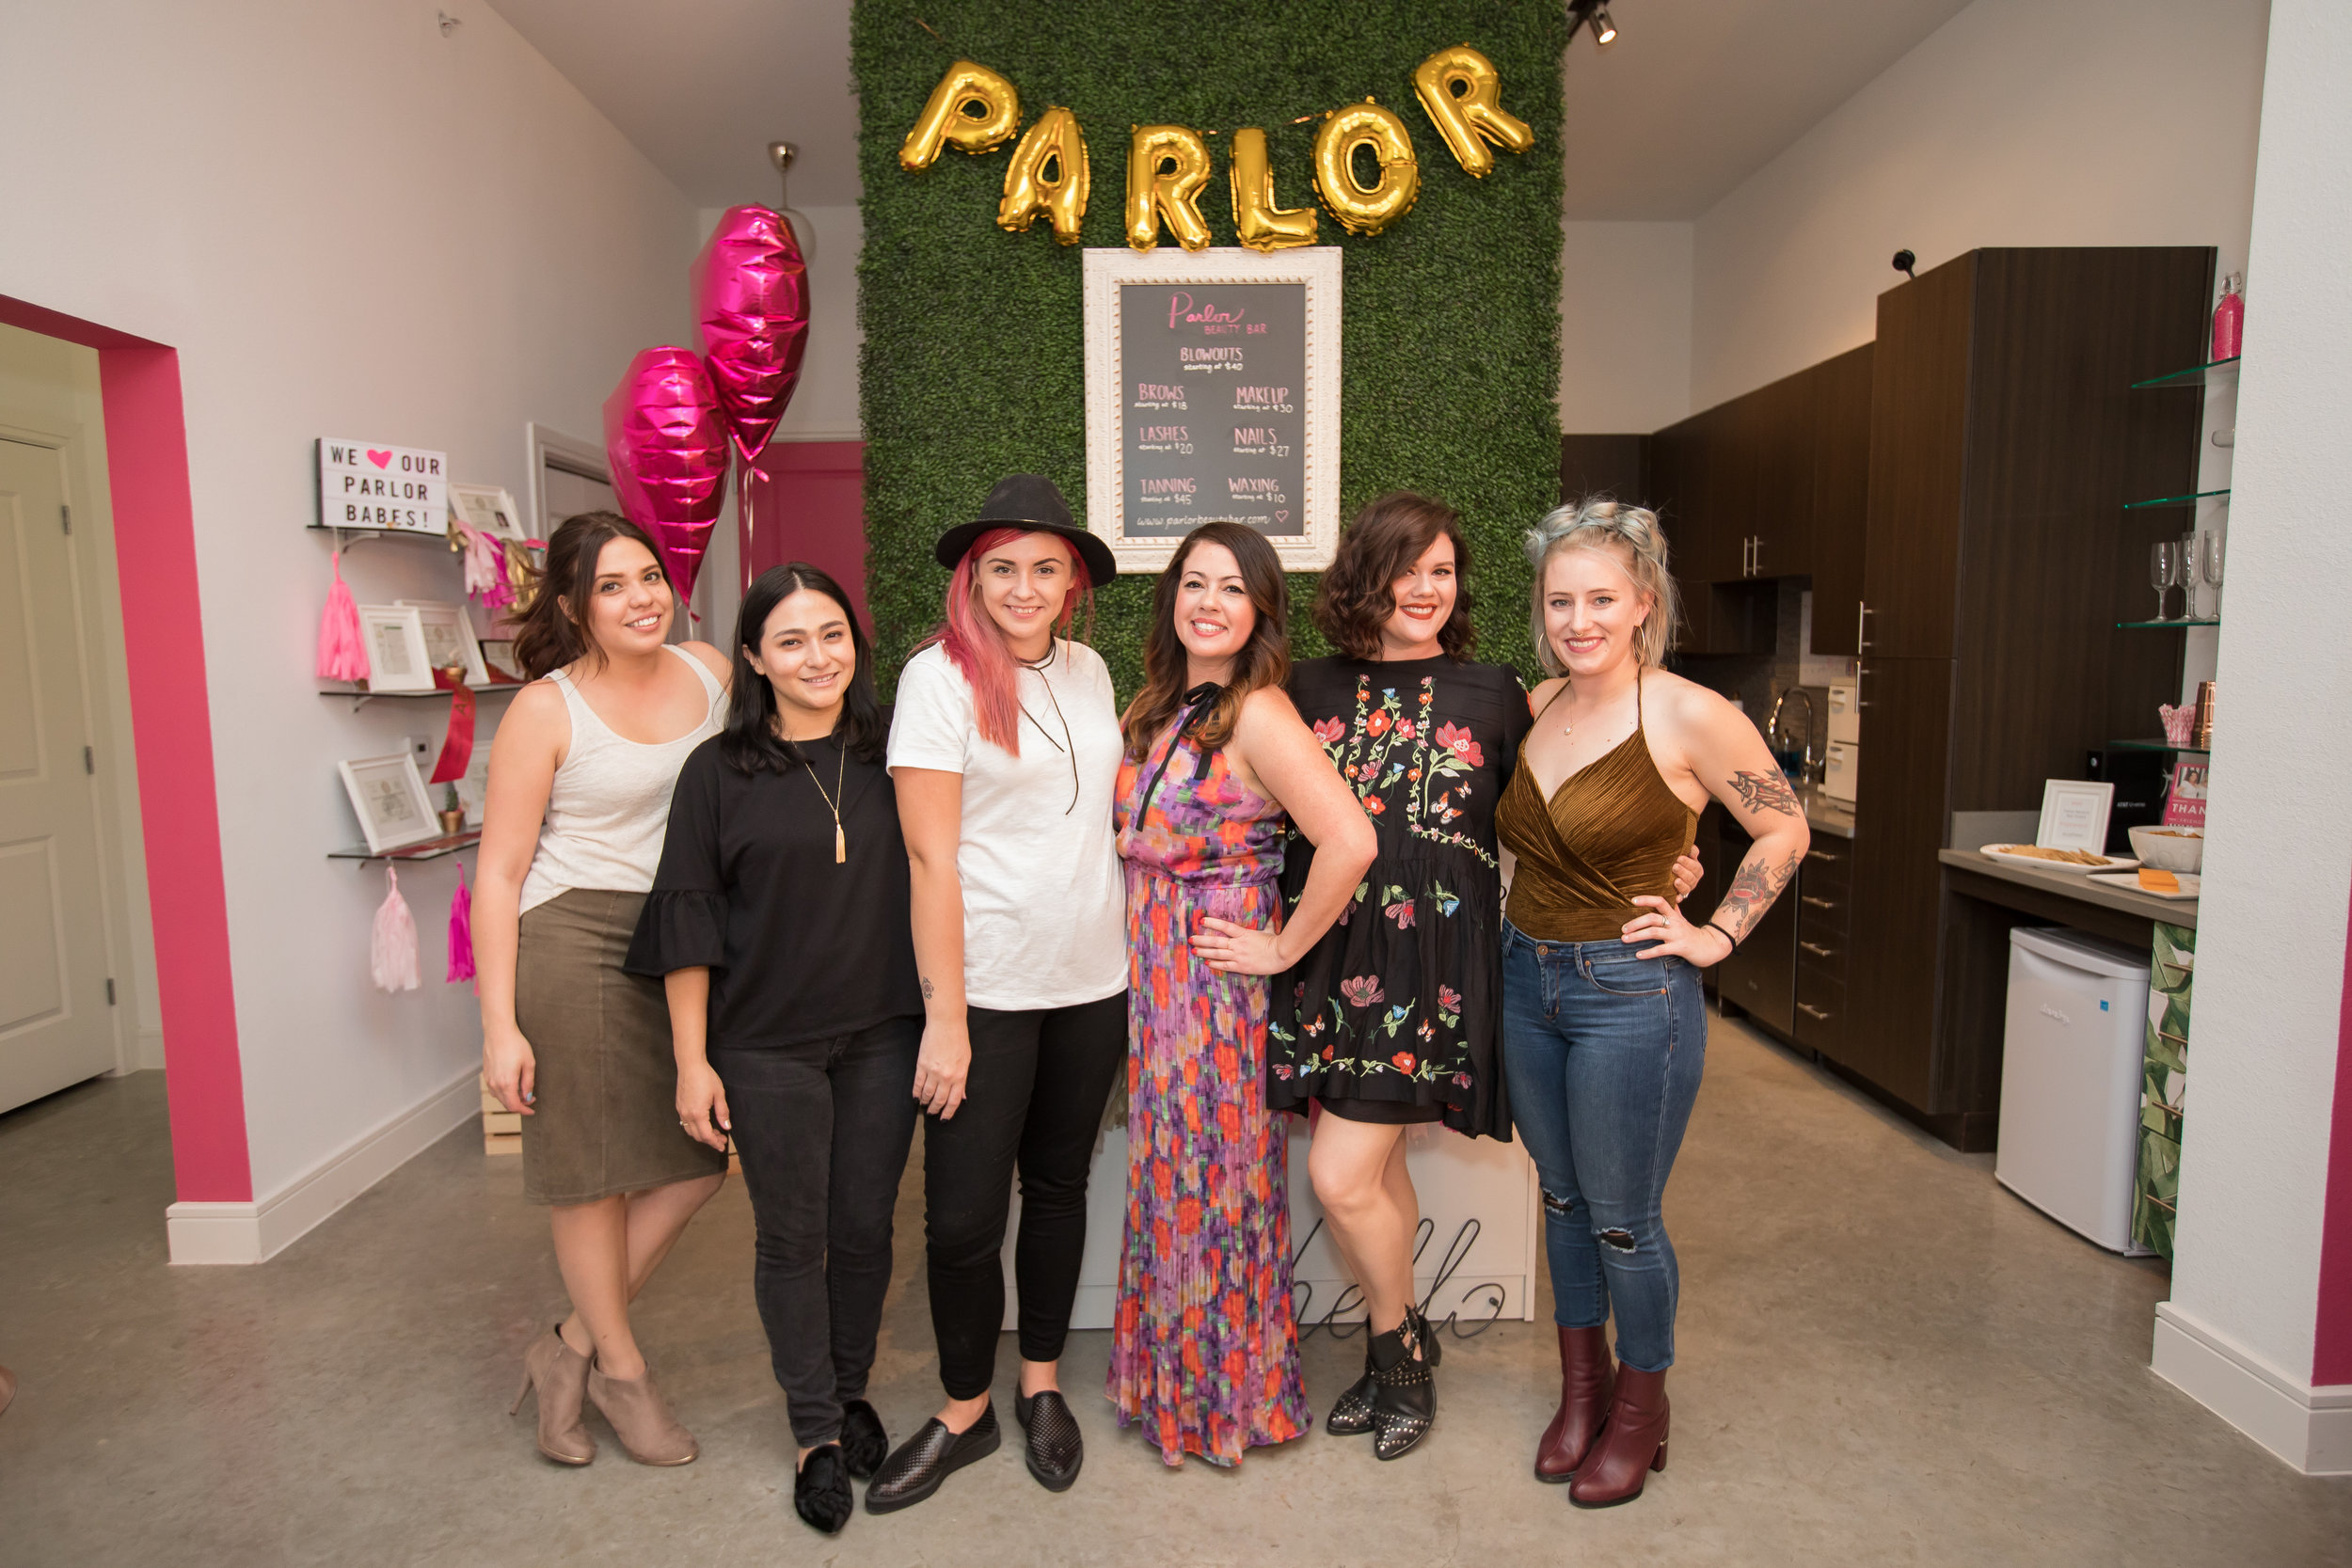 parlor-beauty-bar-staff-austin.jpg